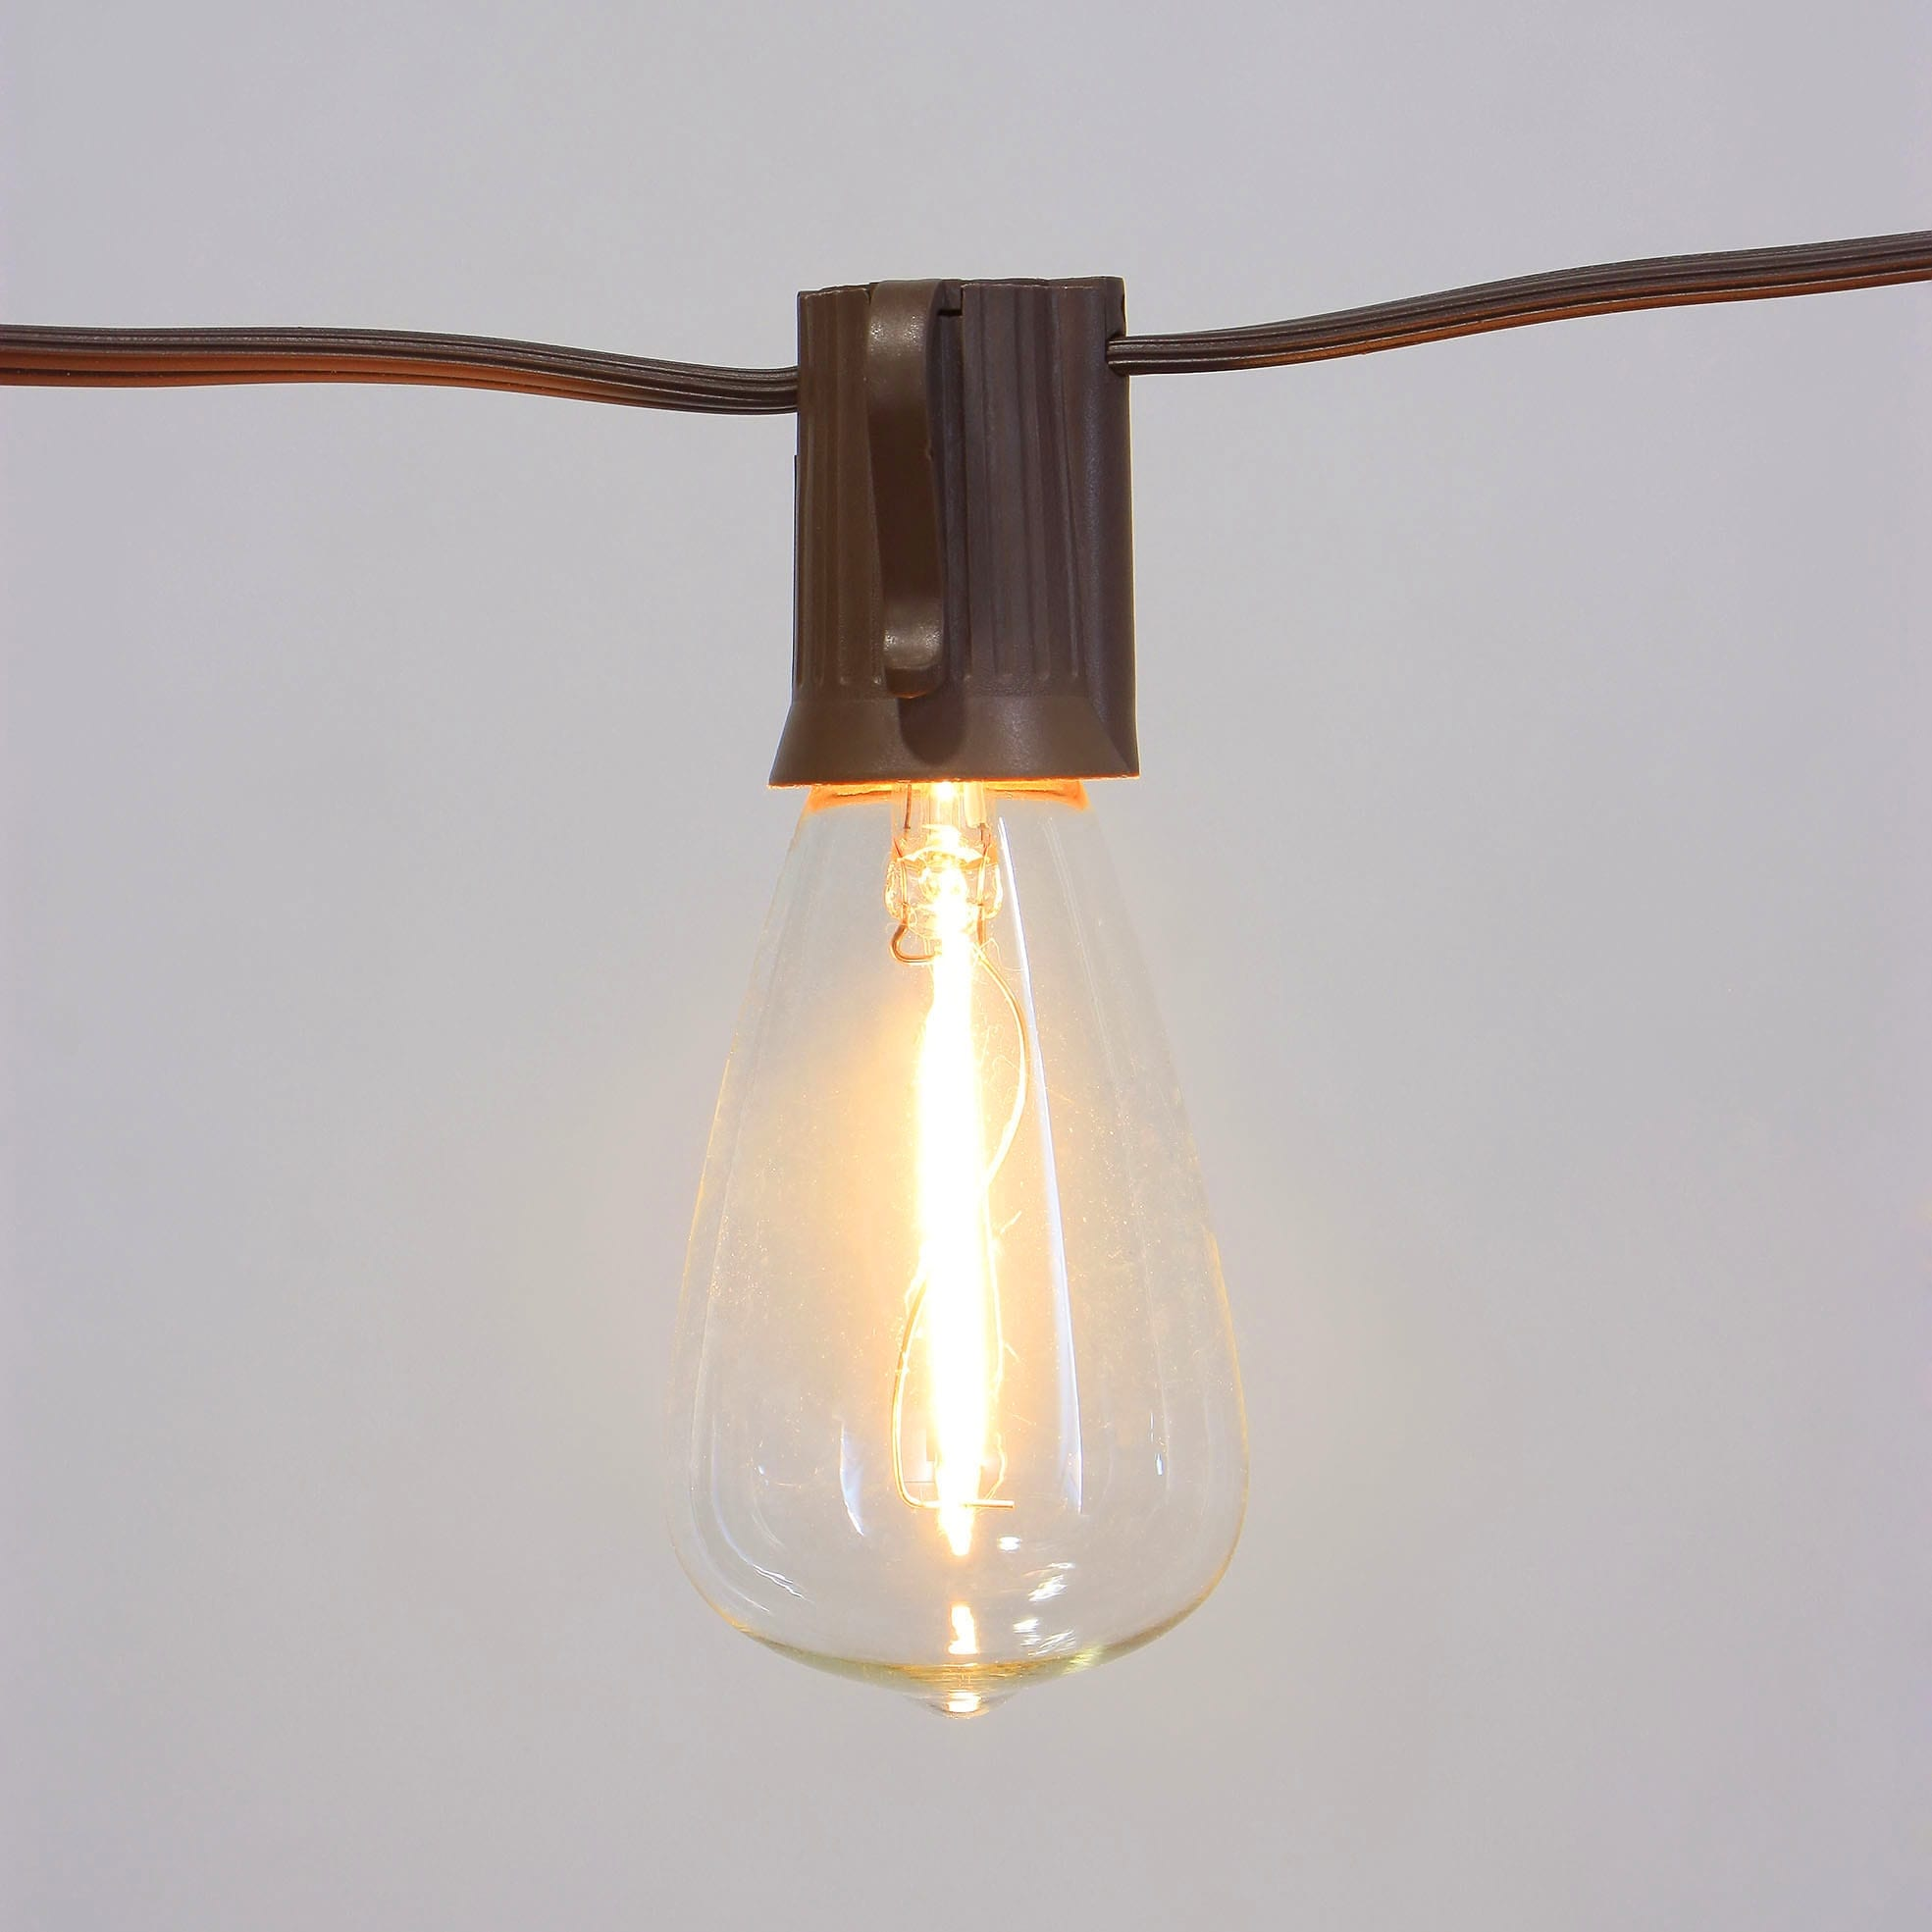 Incandescent String Light  MYHH41131 Featured Image